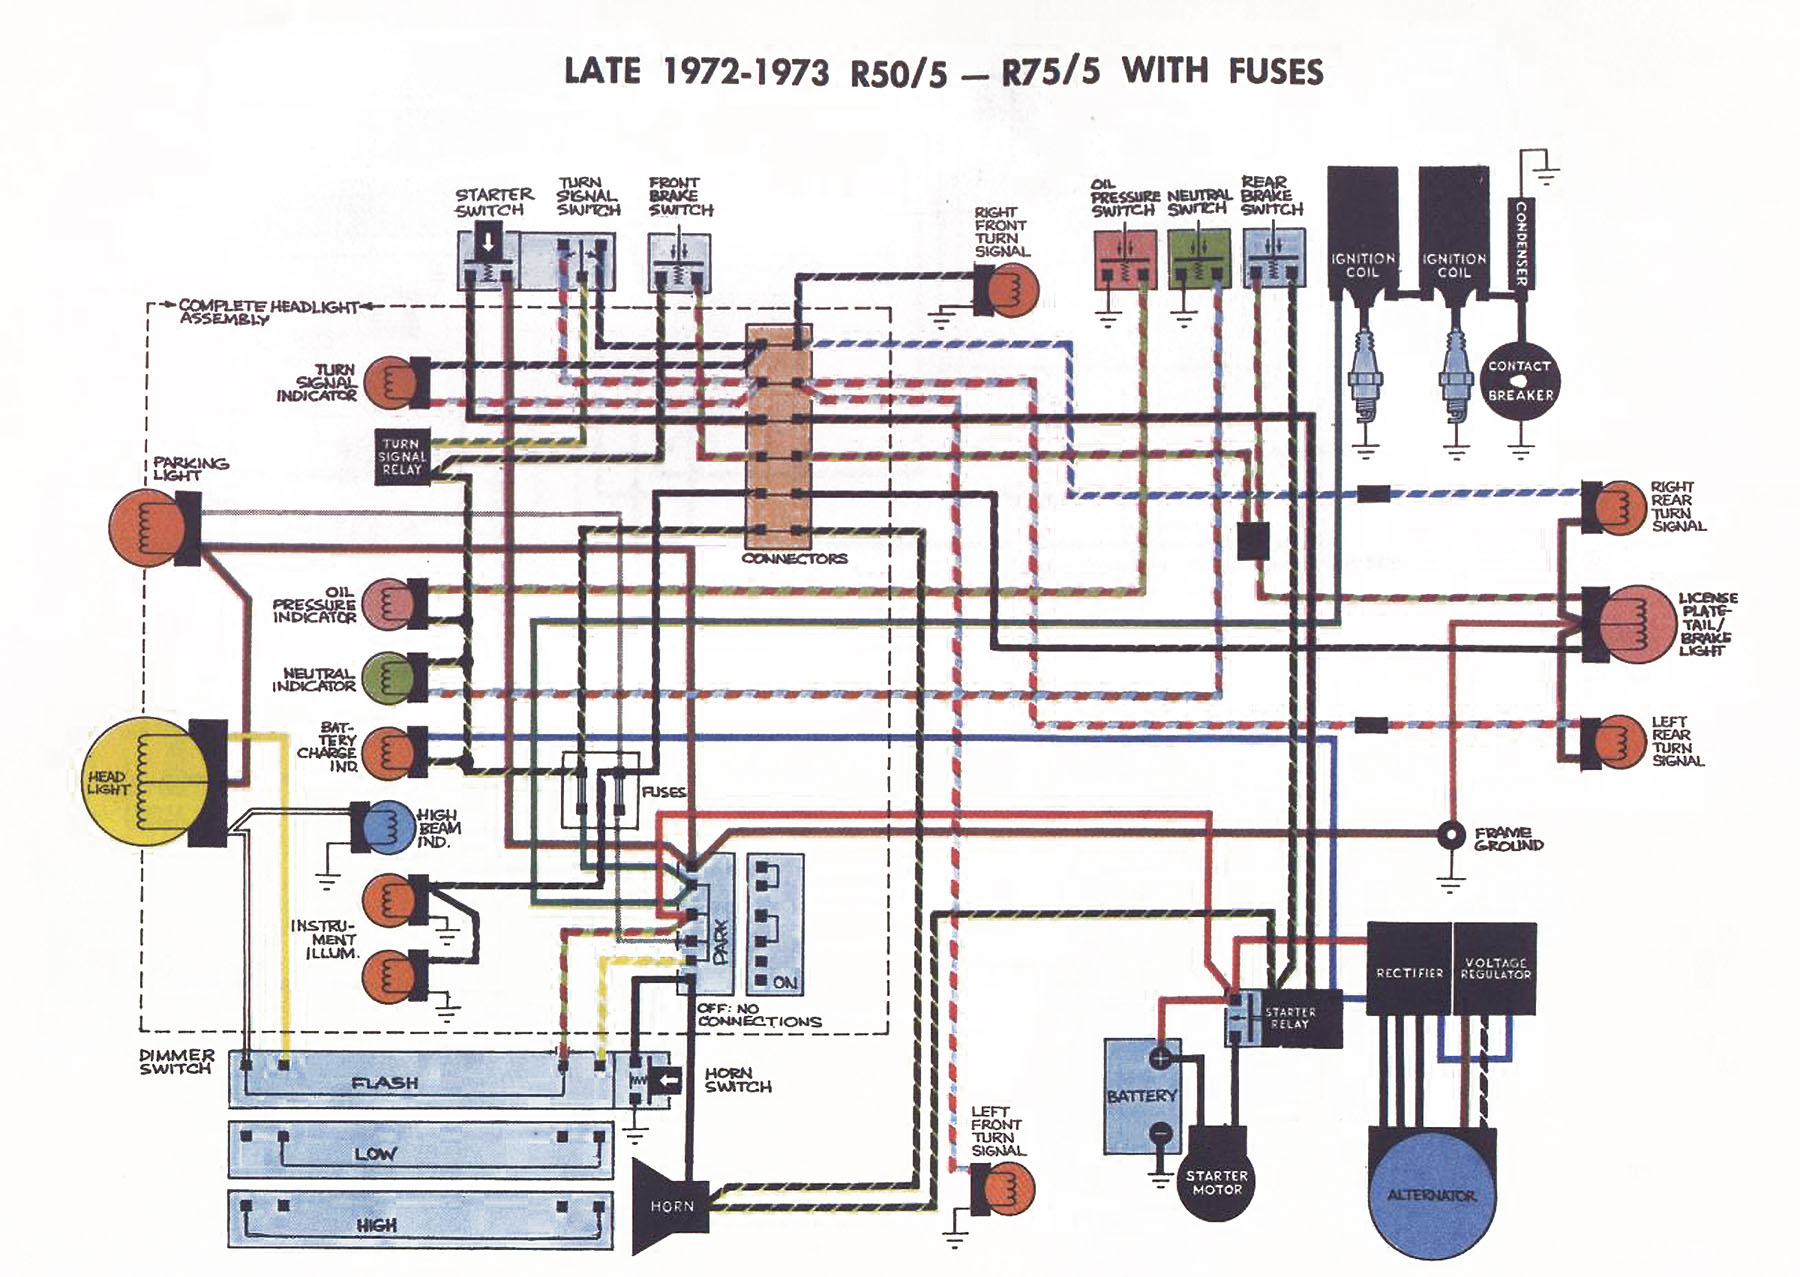 Wondrous Bmw R75 Wiring Diagram Wiring Library Wiring Digital Resources Minagakbiperorg